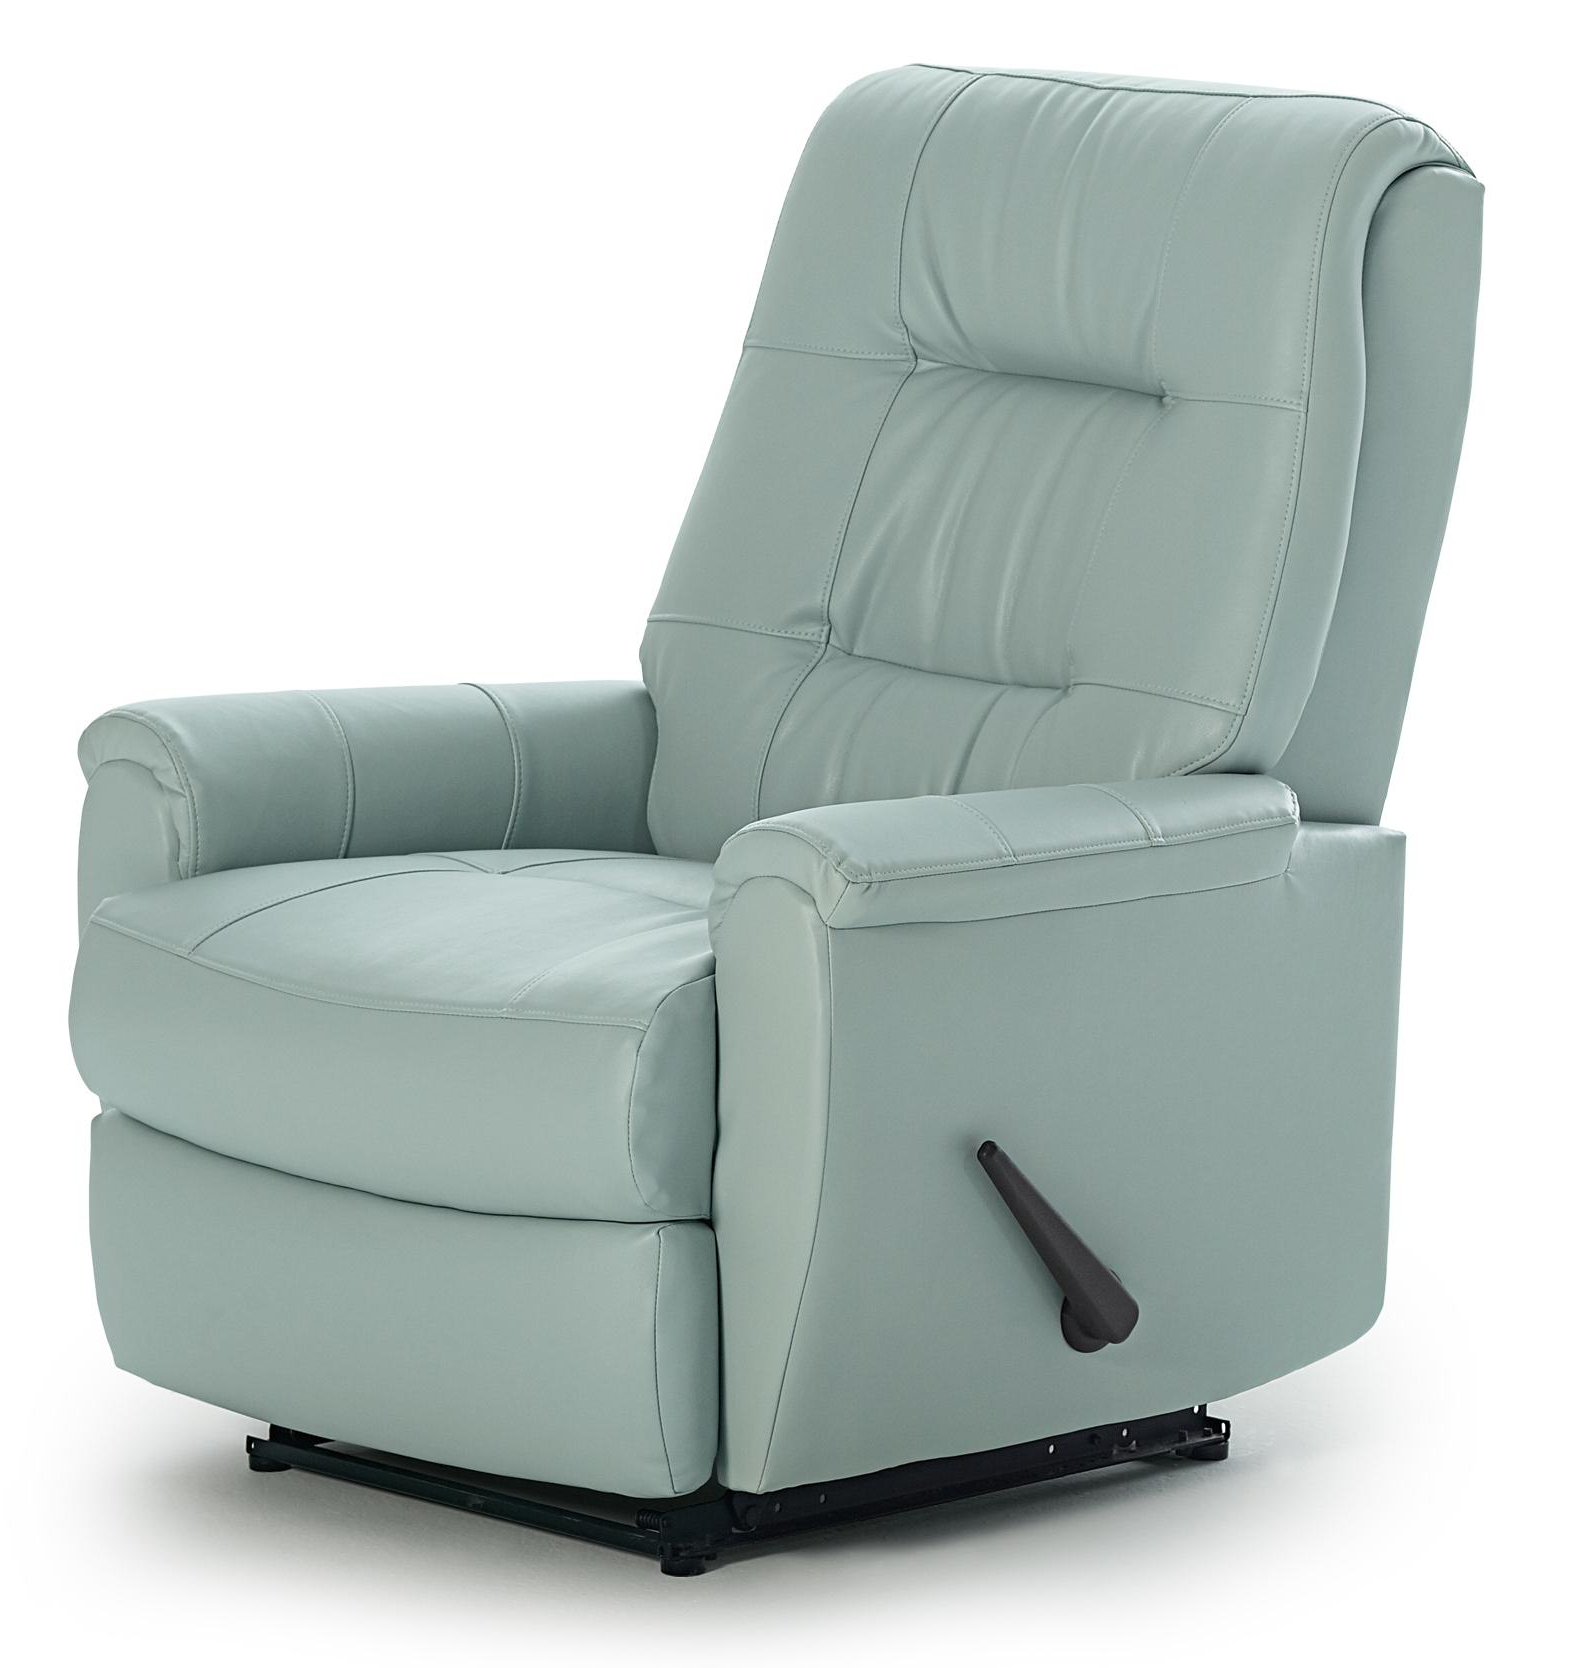 Widely Used Leather Swivel Rocker Recliner And Its Benefits (Gallery 14 of 20)